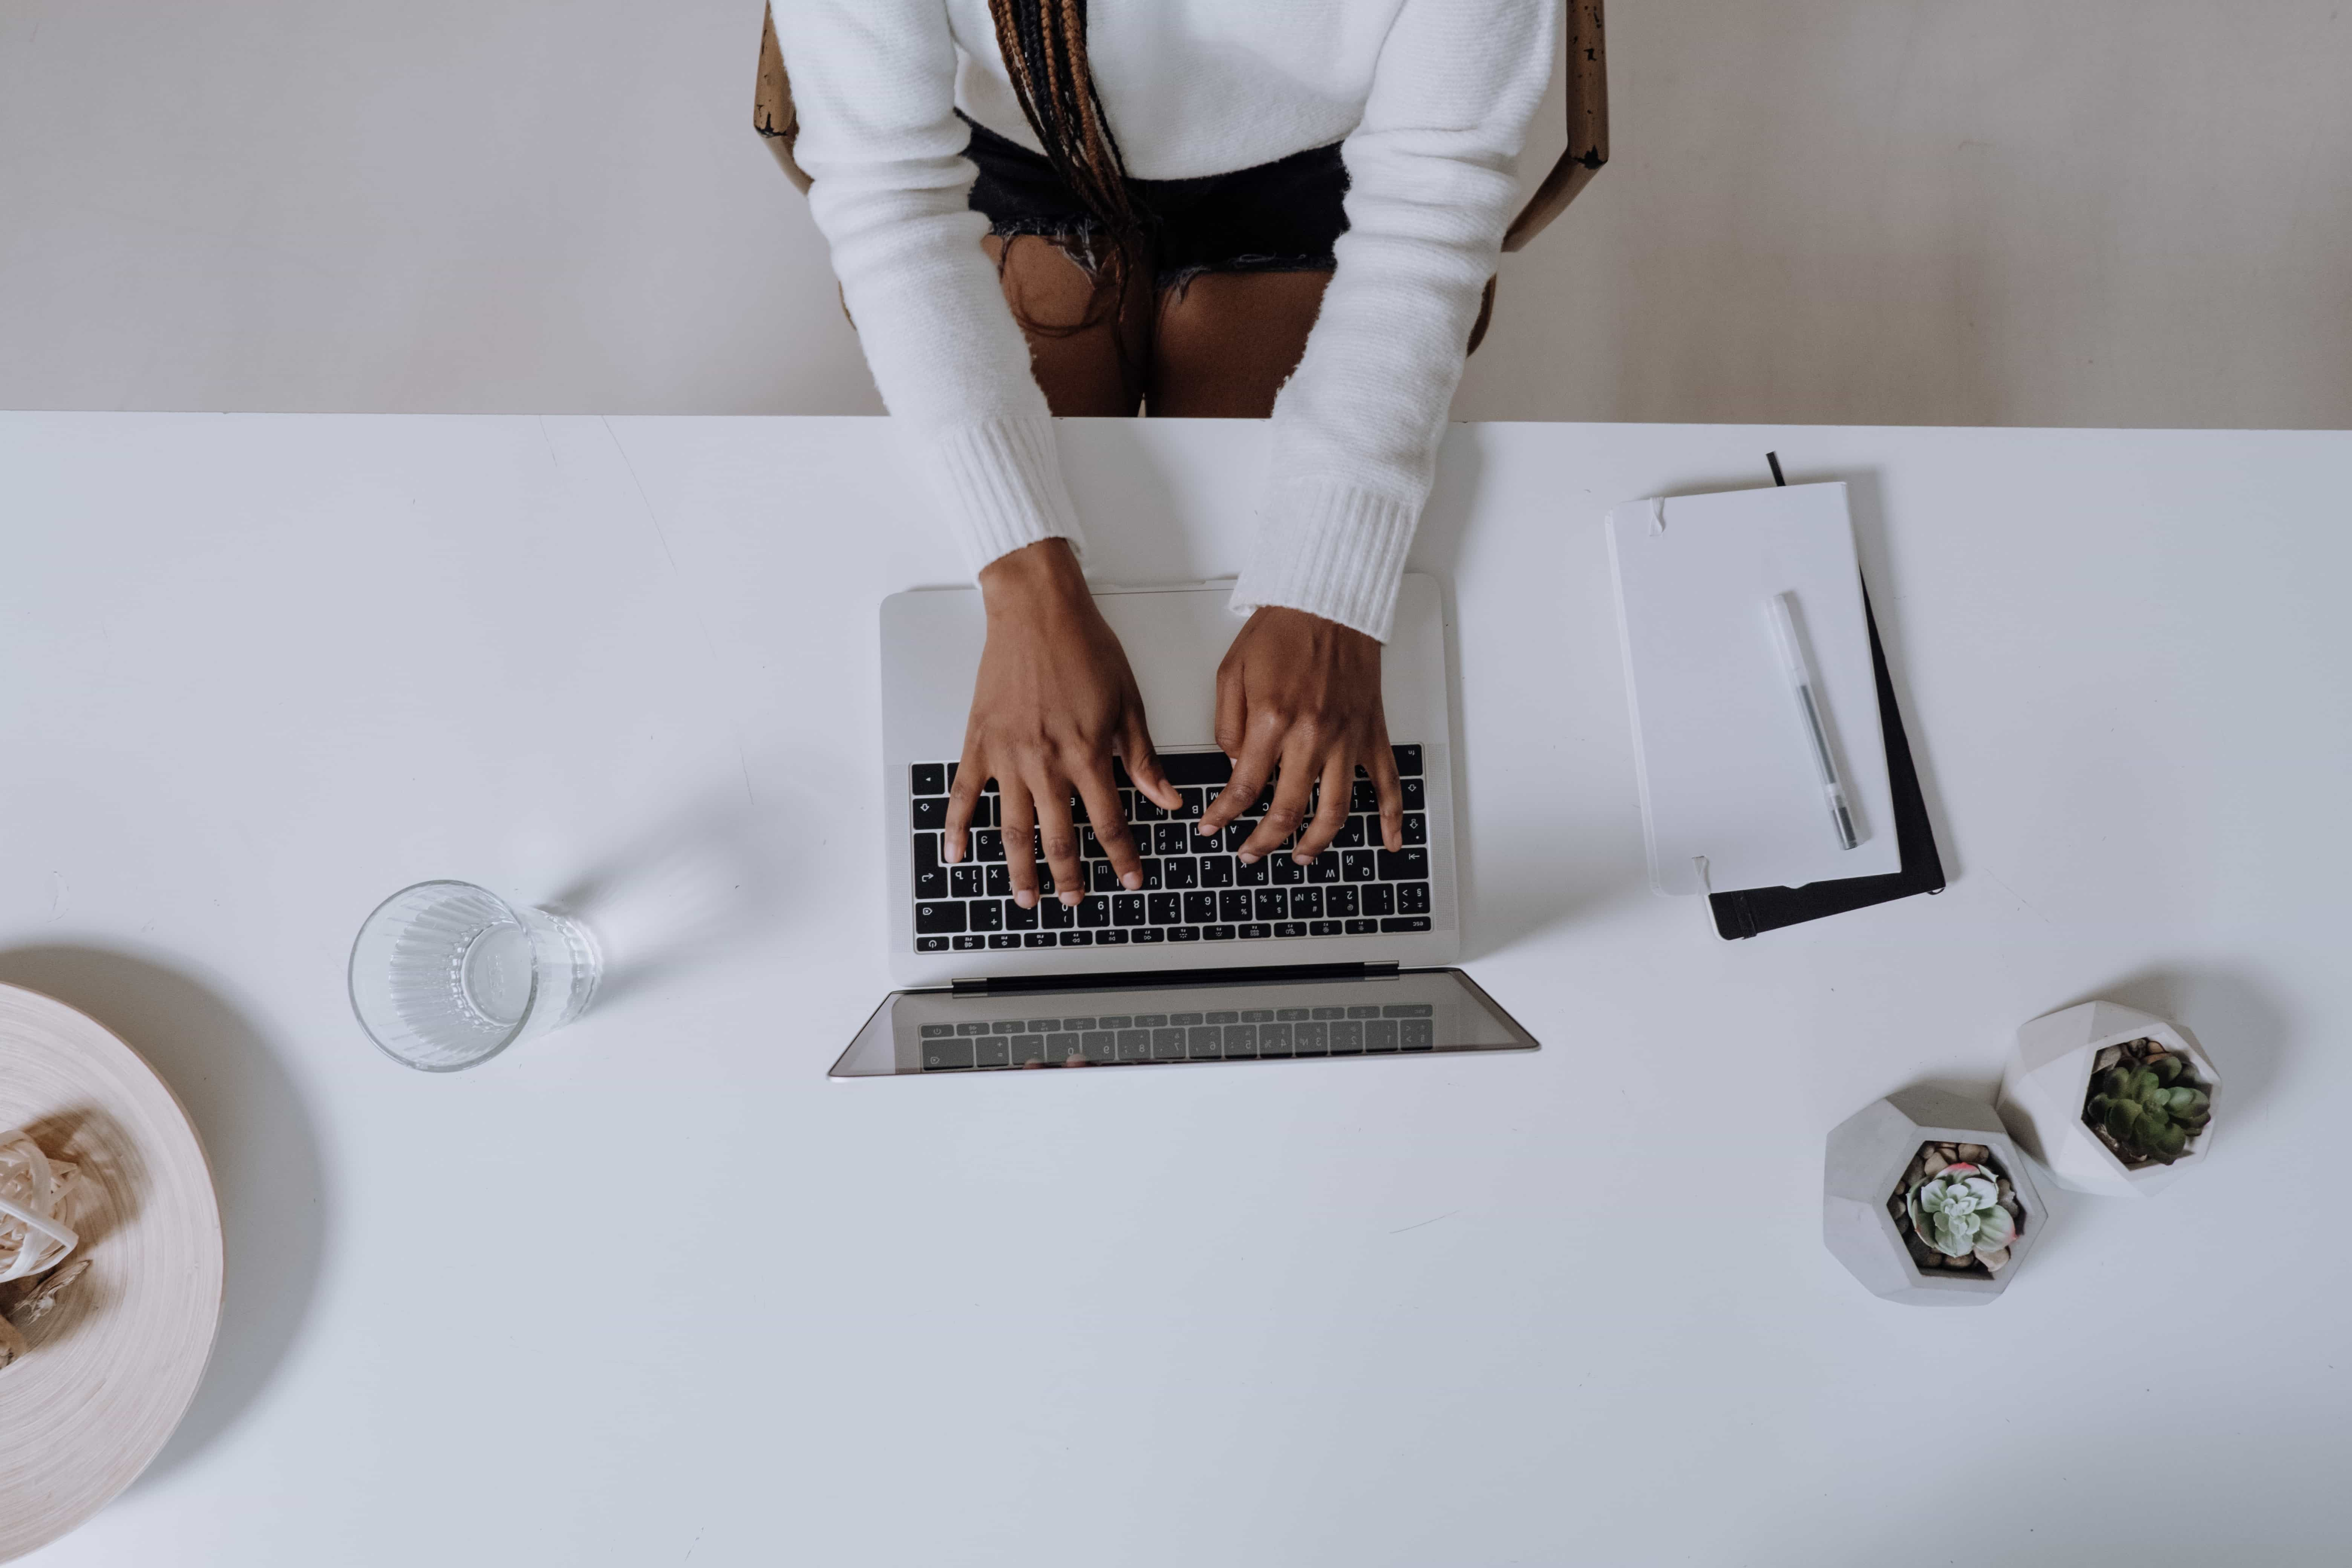 Our Top Tips for Working at Home